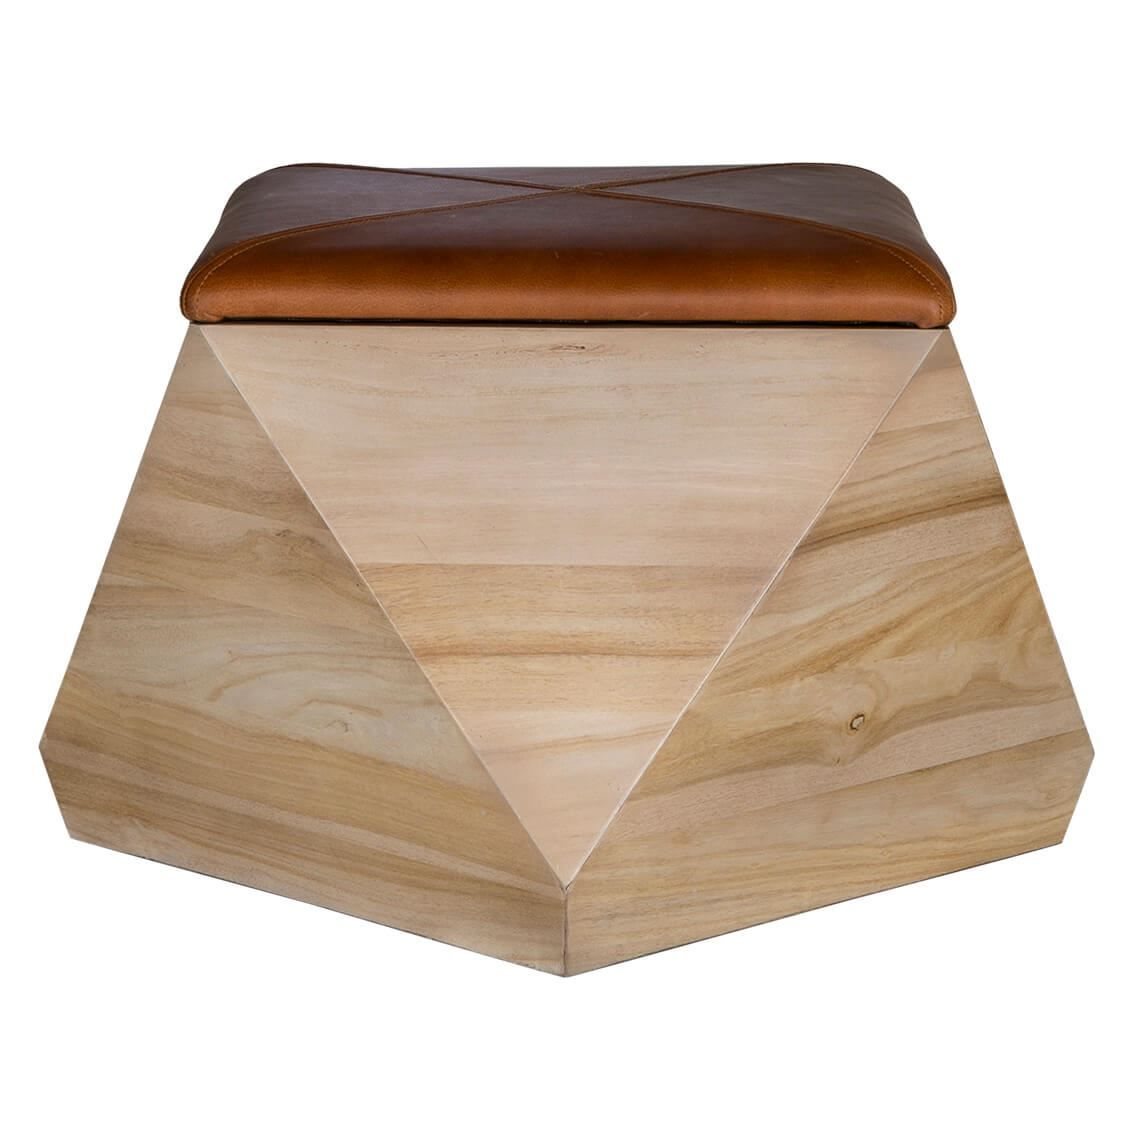 Strange Prism Storage Stool With Leather Natural In 2019 Living Short Links Chair Design For Home Short Linksinfo